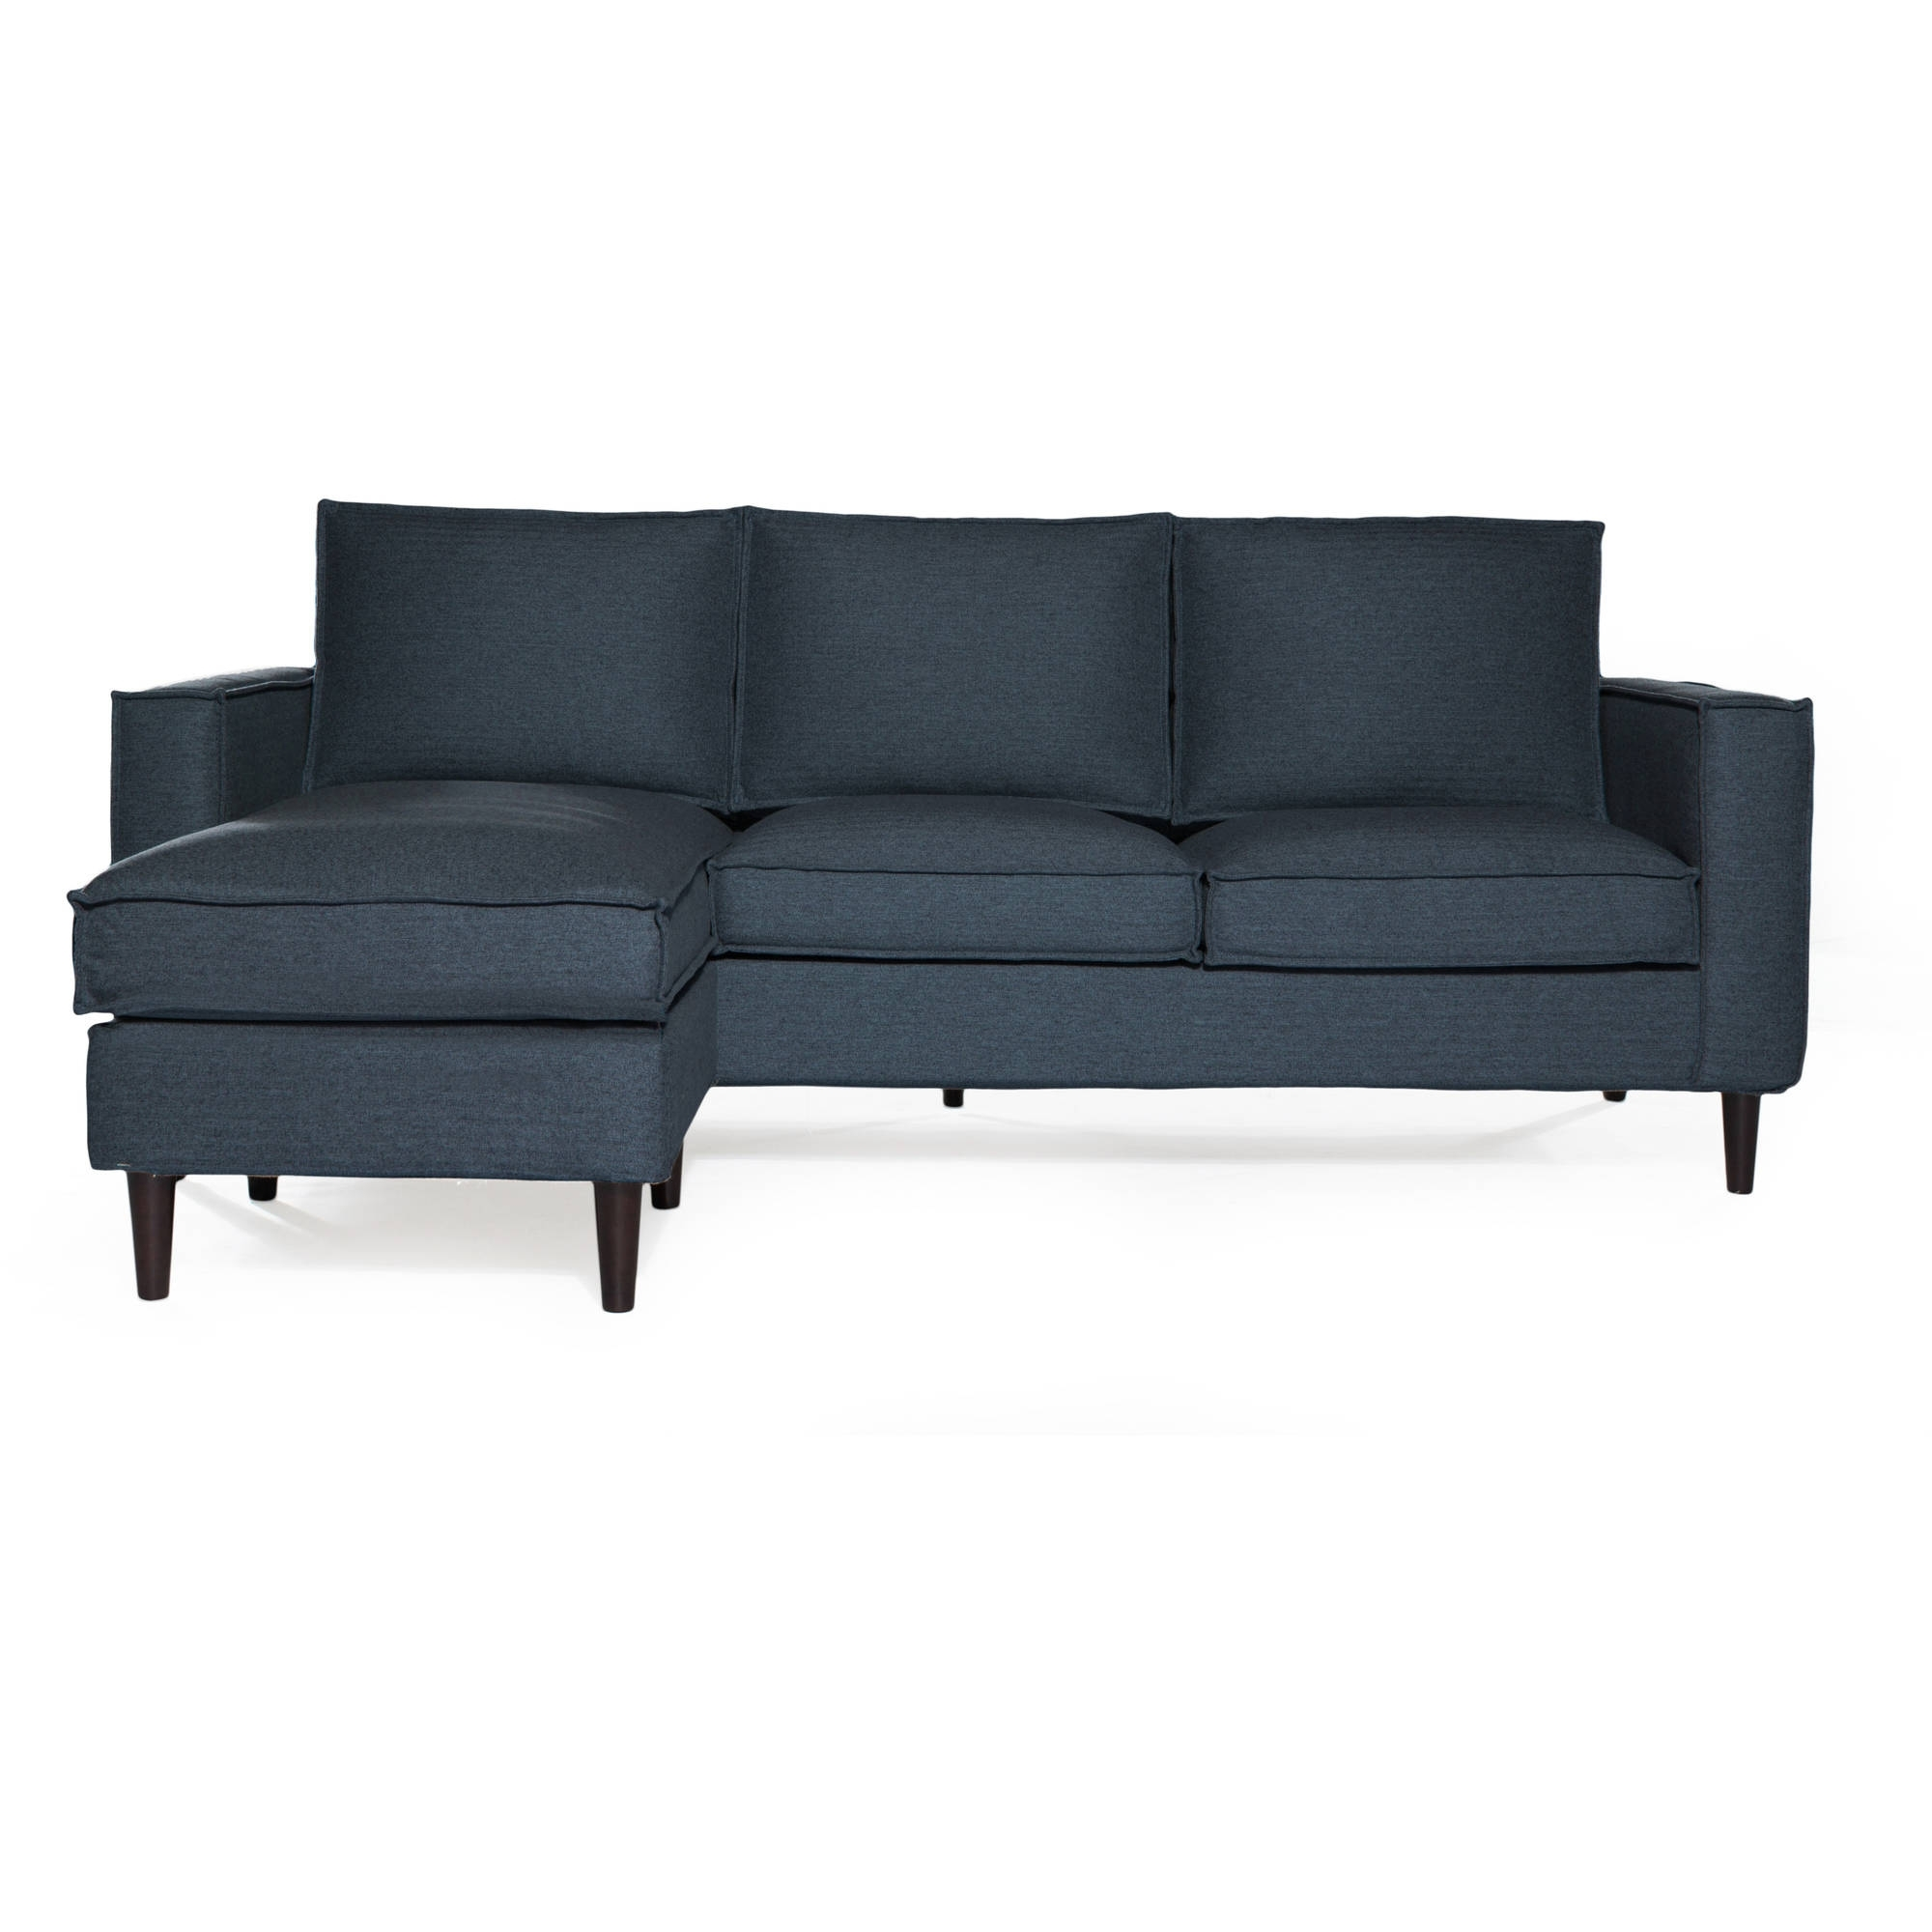 Favorite Nanaimo Sectional Sofas Intended For Loveseats – Walmart (View 2 of 20)